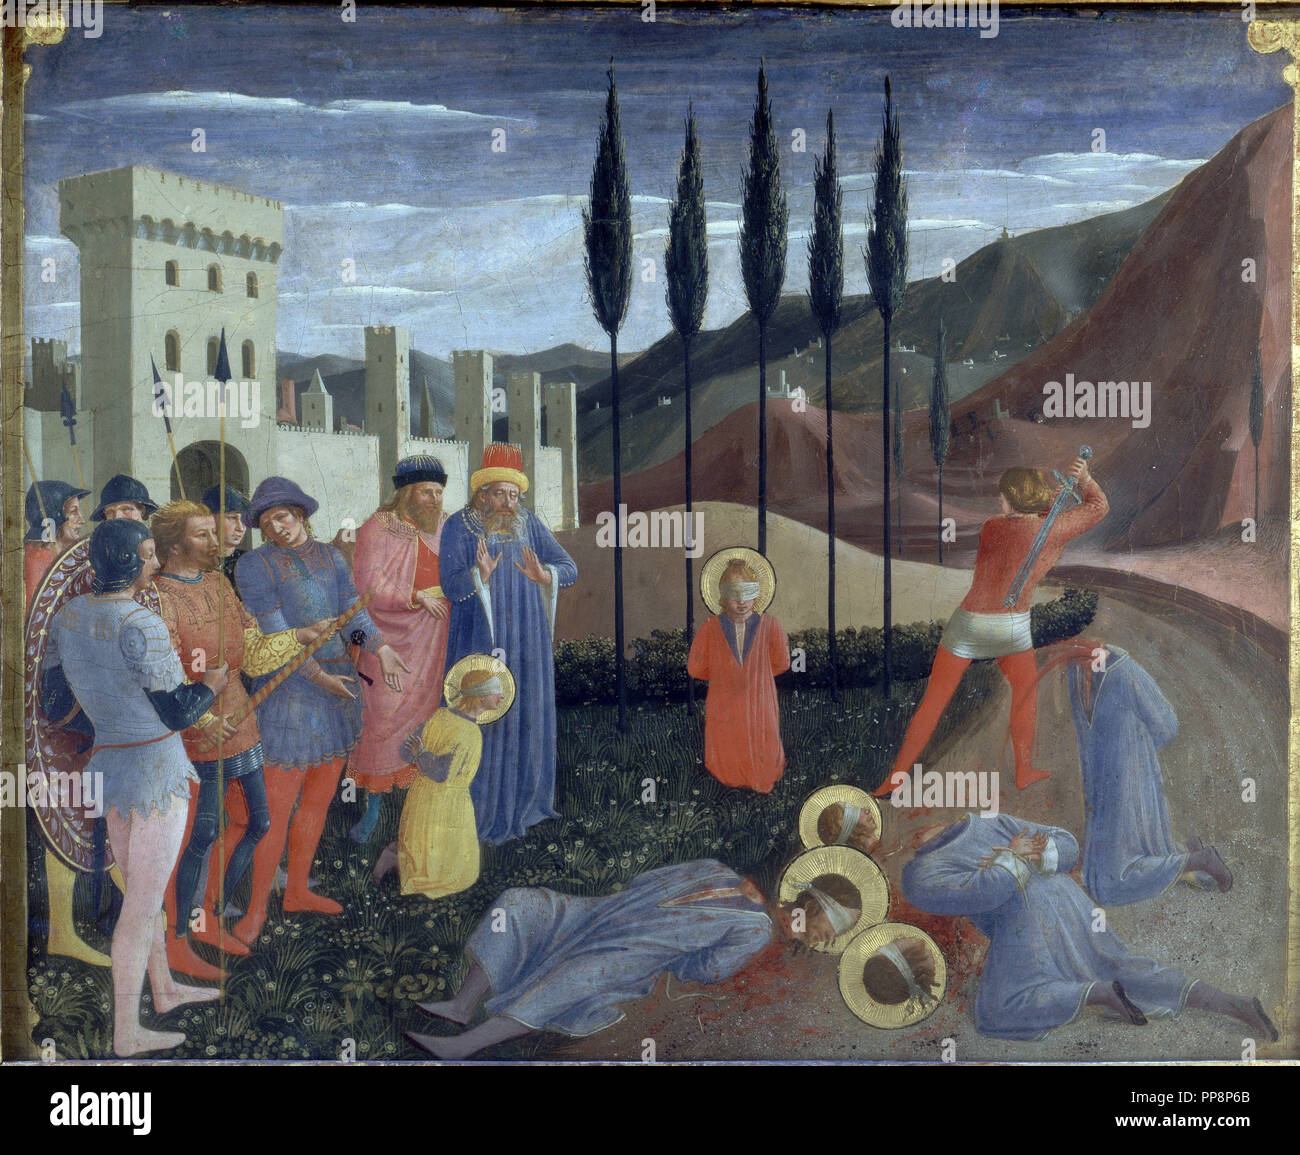 Martyrdom of Saint Cosmas and Saint Damian - 1438-1440- 37,3x46,1- Saint Marco Alterpiece. Author: FRA ANGELICO. Location: LOUVRE MUSEUM-PAINTINGS. France. - Stock Image